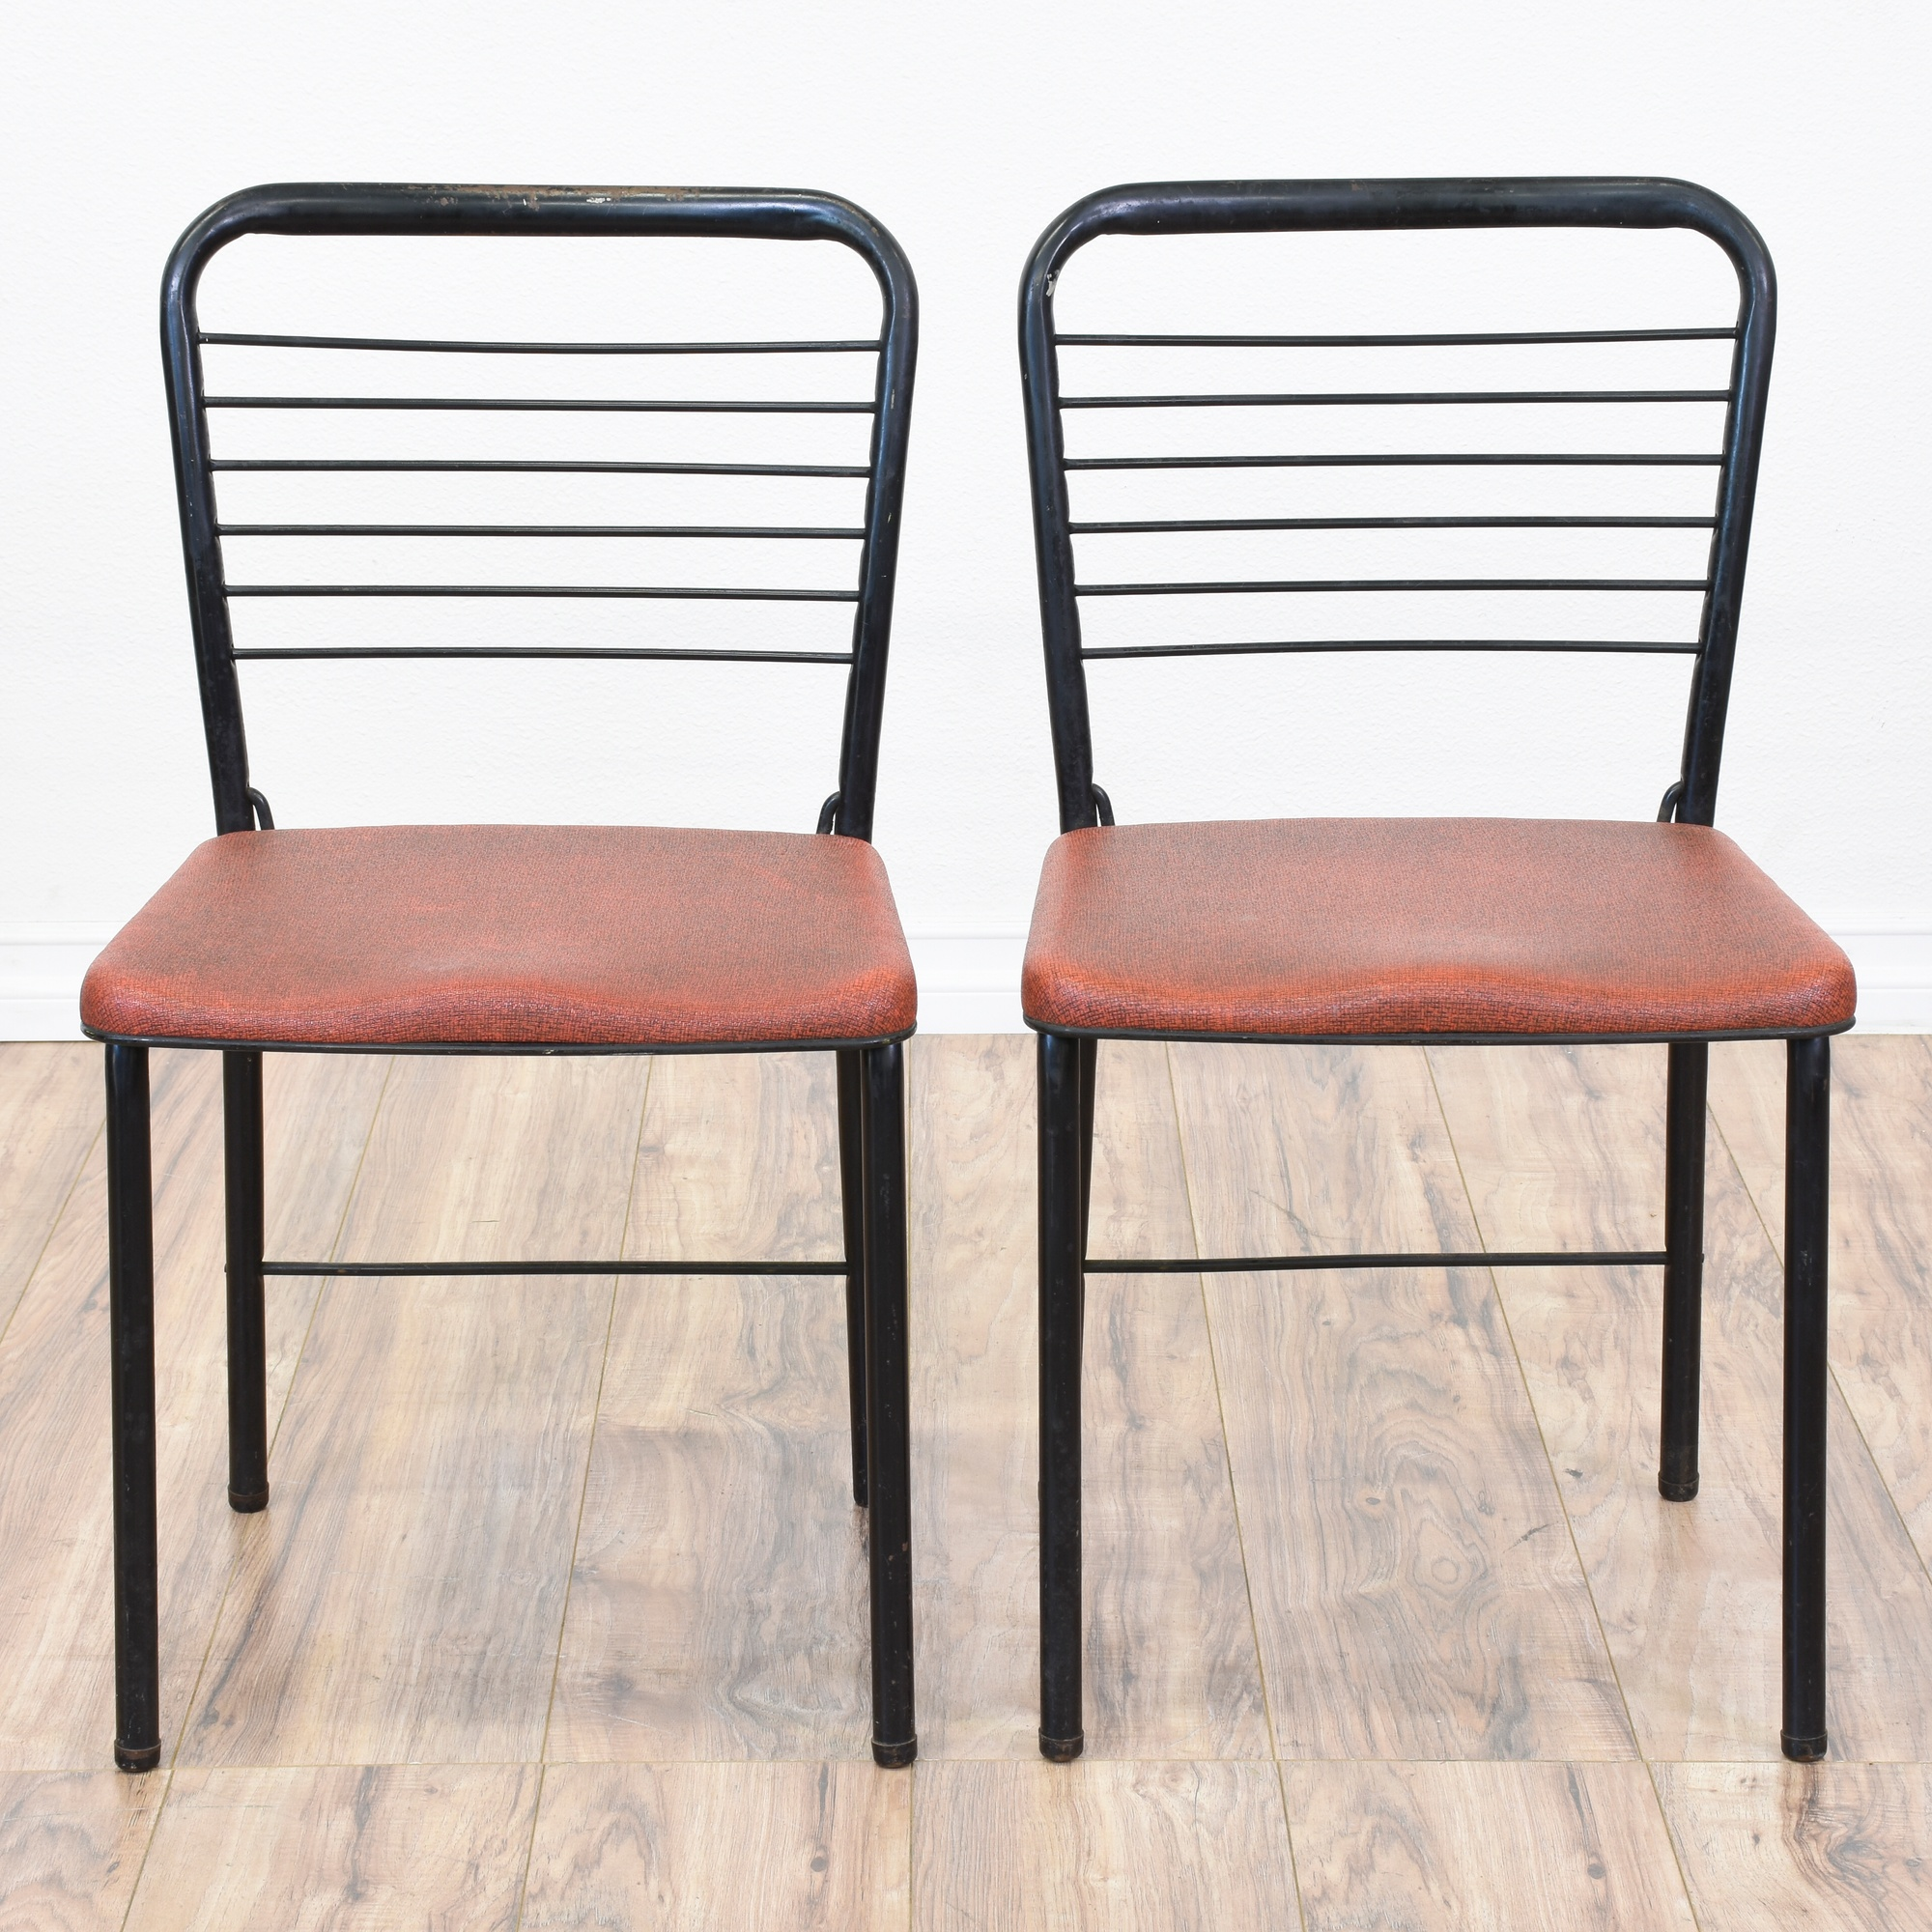 Pair Of Black Mid Century Modern Folding Chairs Loveseat Vintage Furniture San Diego Los Angeles